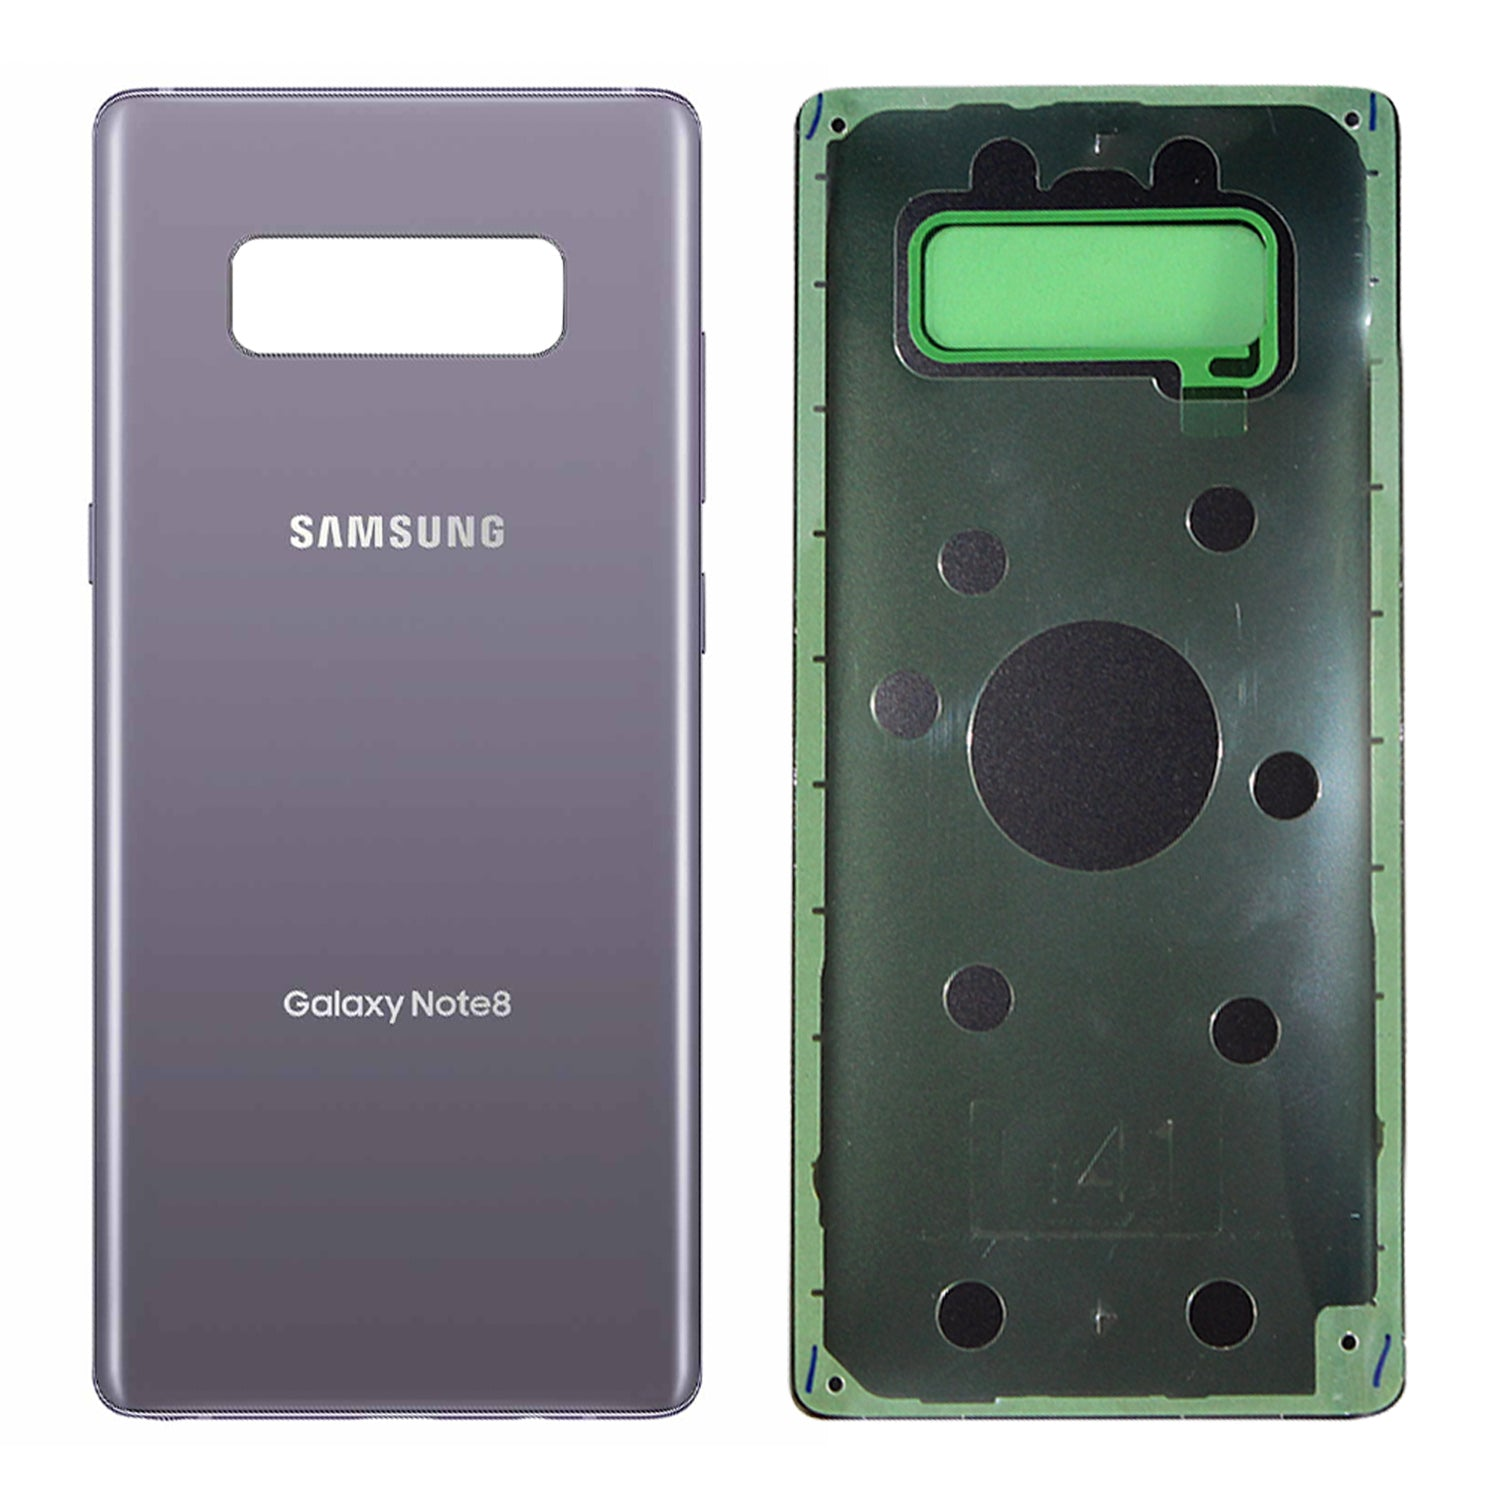 size 40 929a2 433bf Samsung Galaxy Note 8 Back Glass ORCHID GRAY OEM Replacement Battery Cover  N950